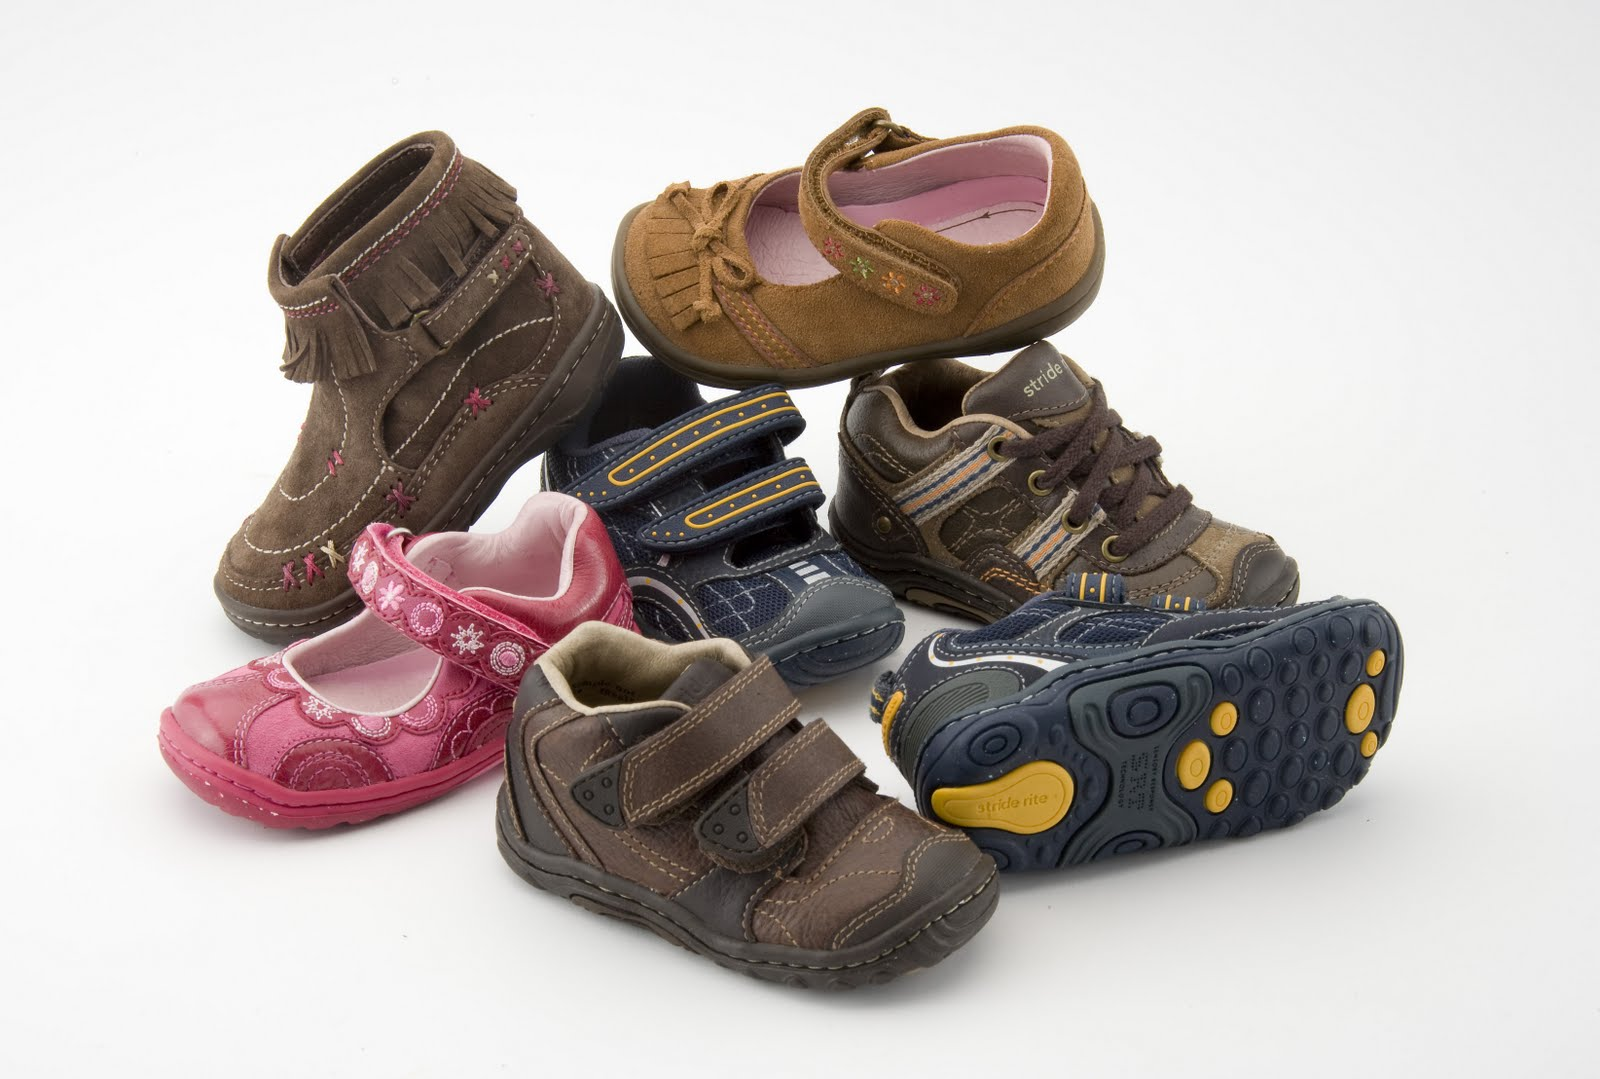 Kipling Shoe Company stocks quality name brand shoes in hard to fit sizes for the whole family and employees that give you the customer service that you need. Stop by .